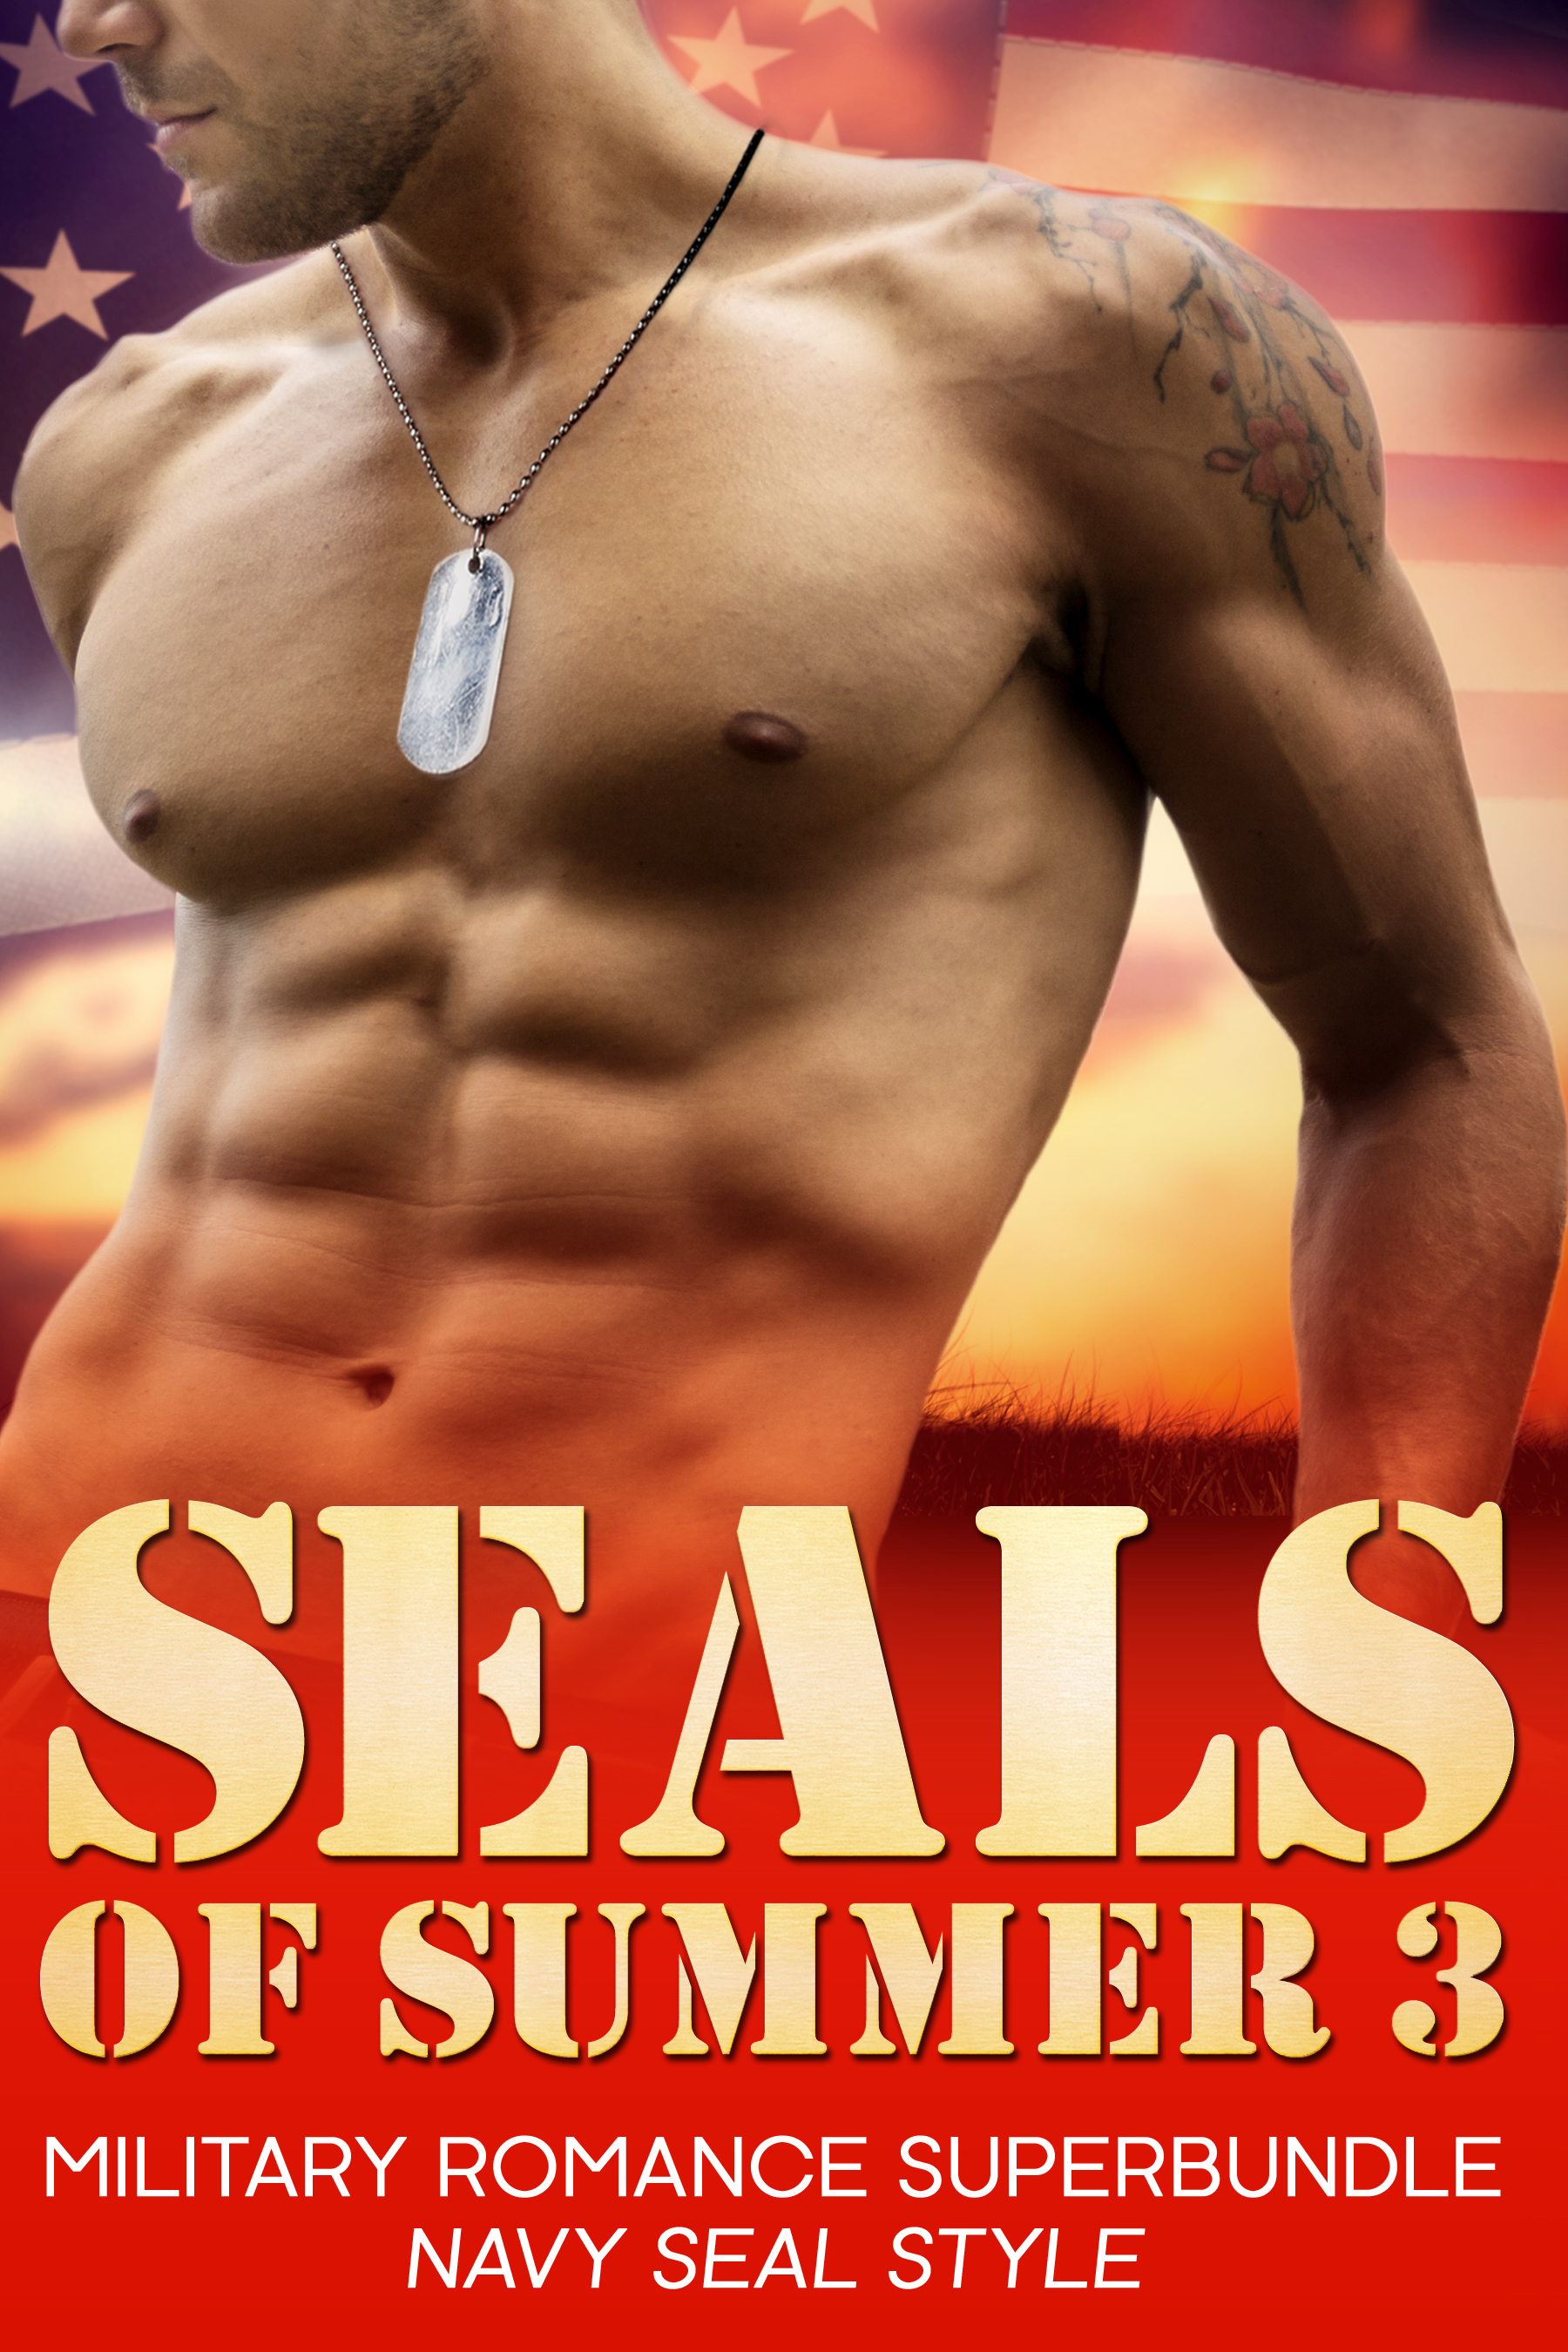 SEALS of Summer 3